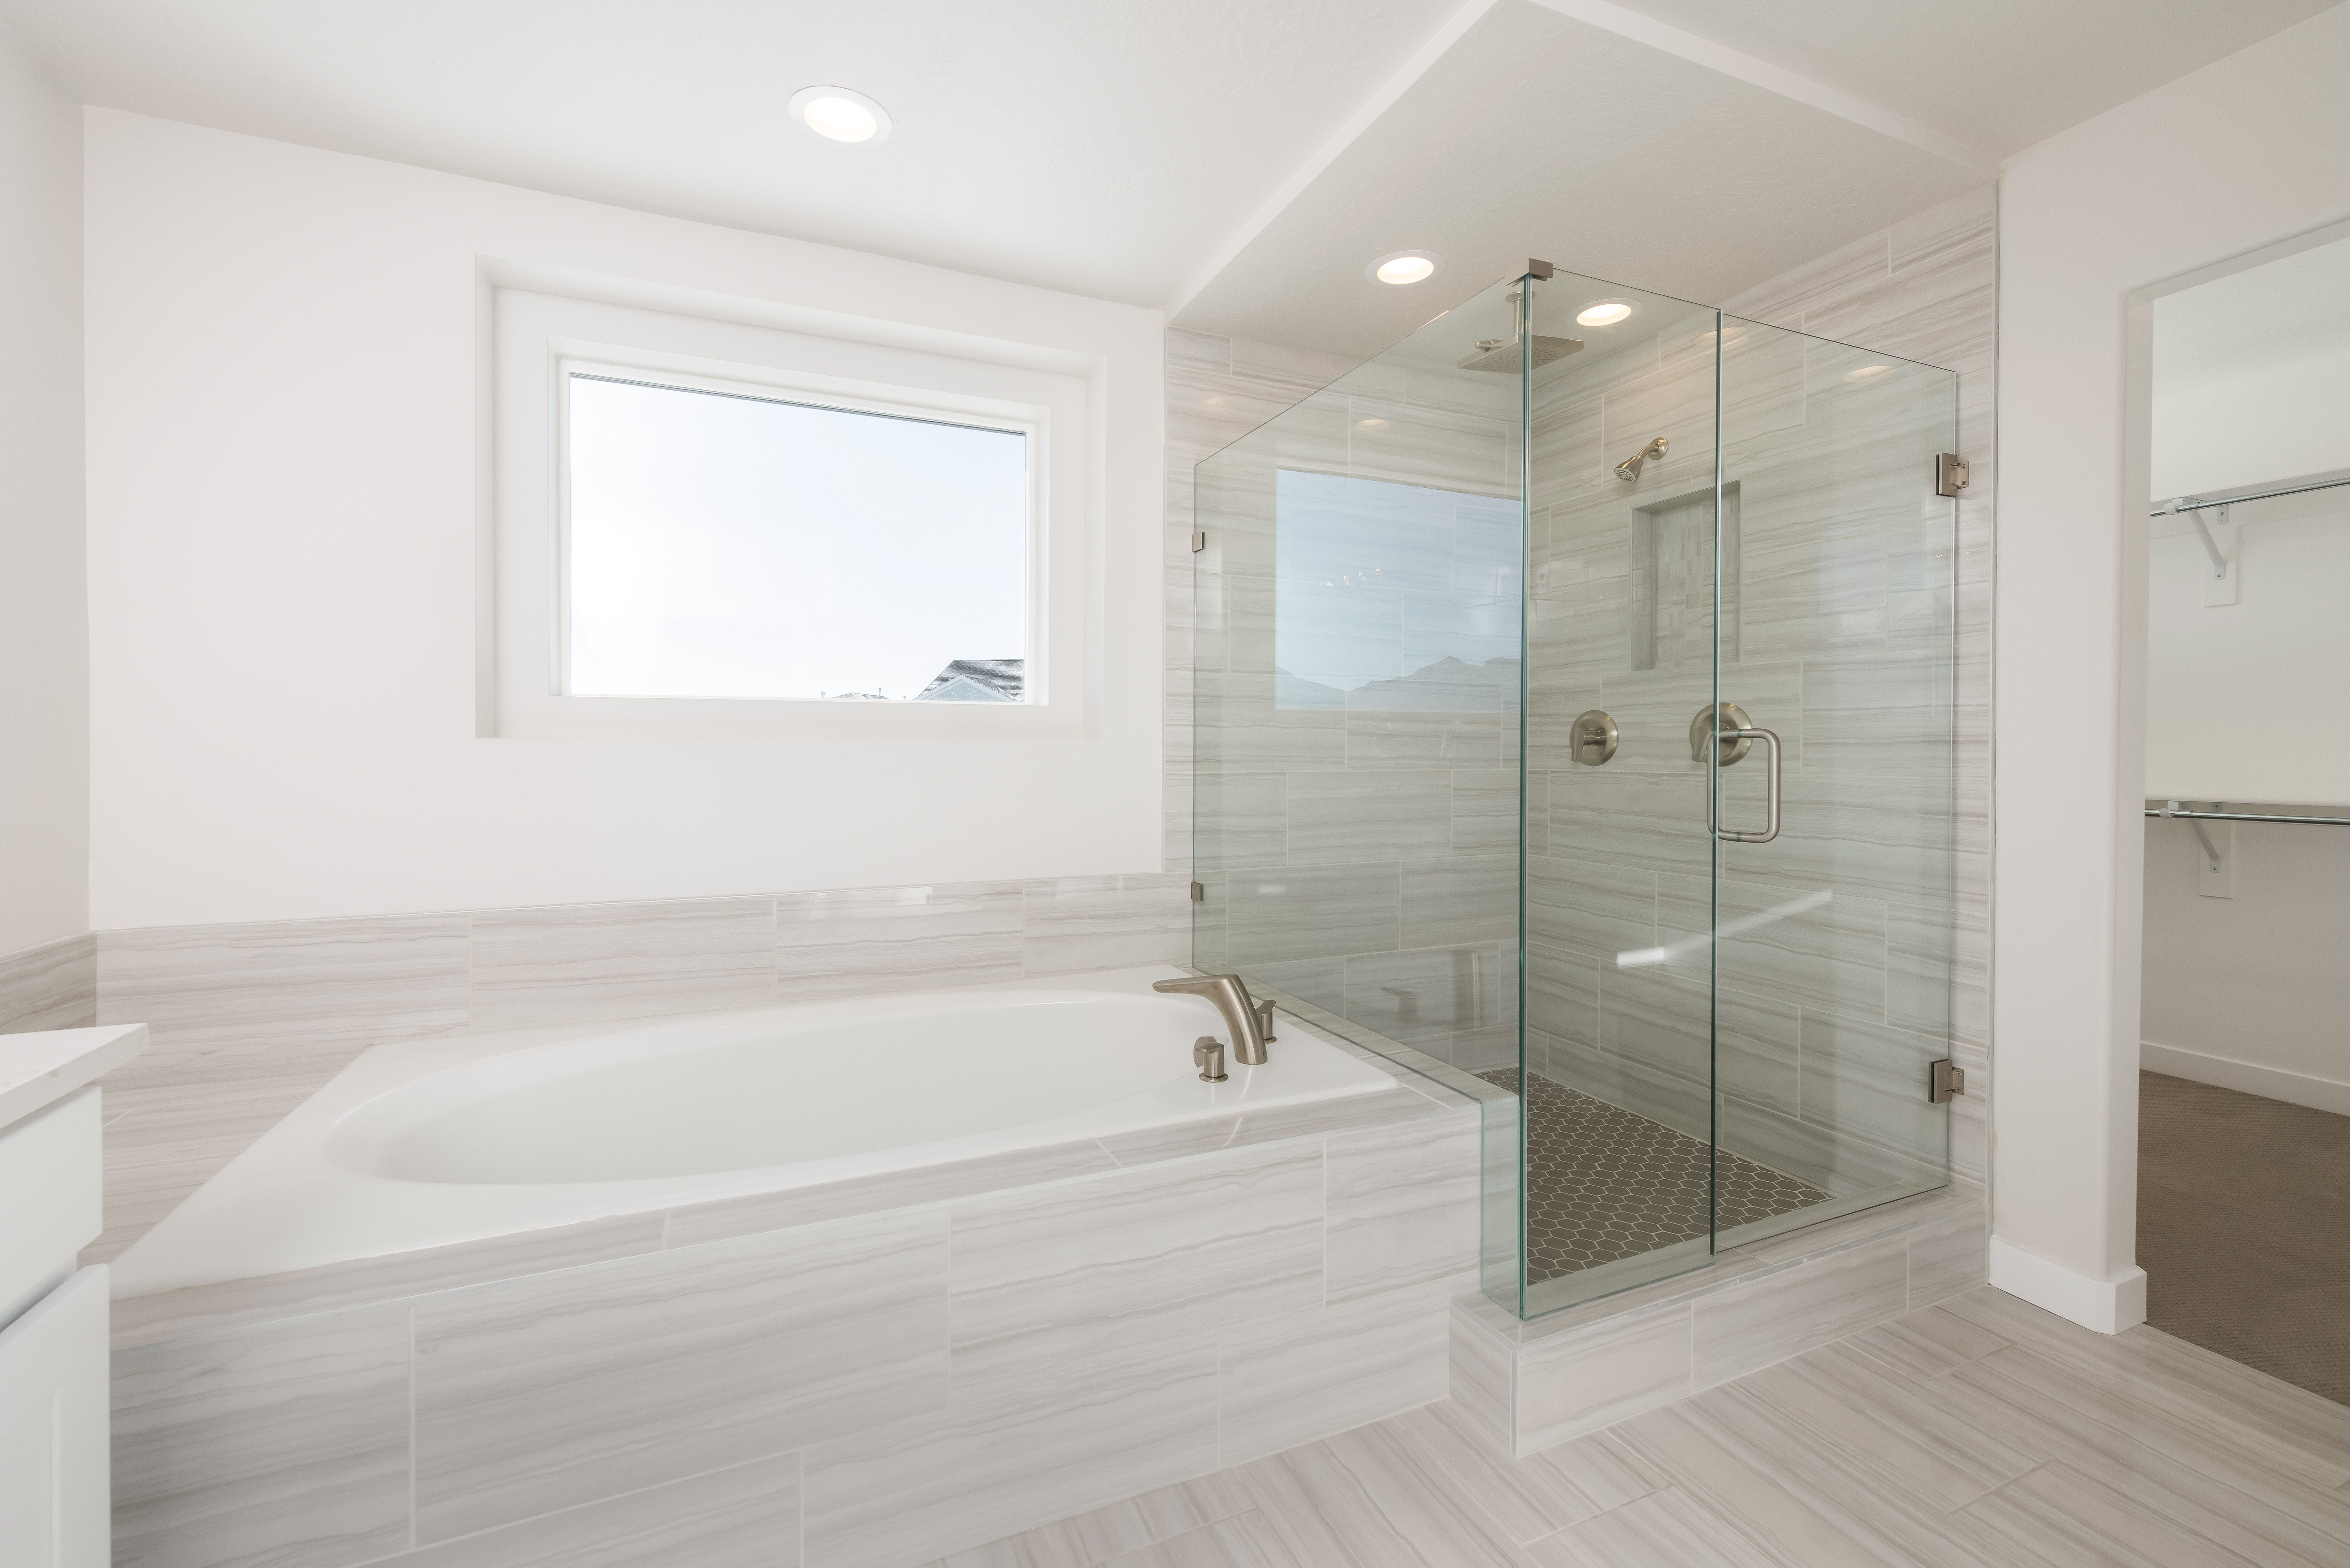 Resort Worthy Master Bathrooms Fit For A King And Queen Luxury Bathroom Upscale Modern Bathroom Remodel Bathroom Design Layout Contemporary Interior Design